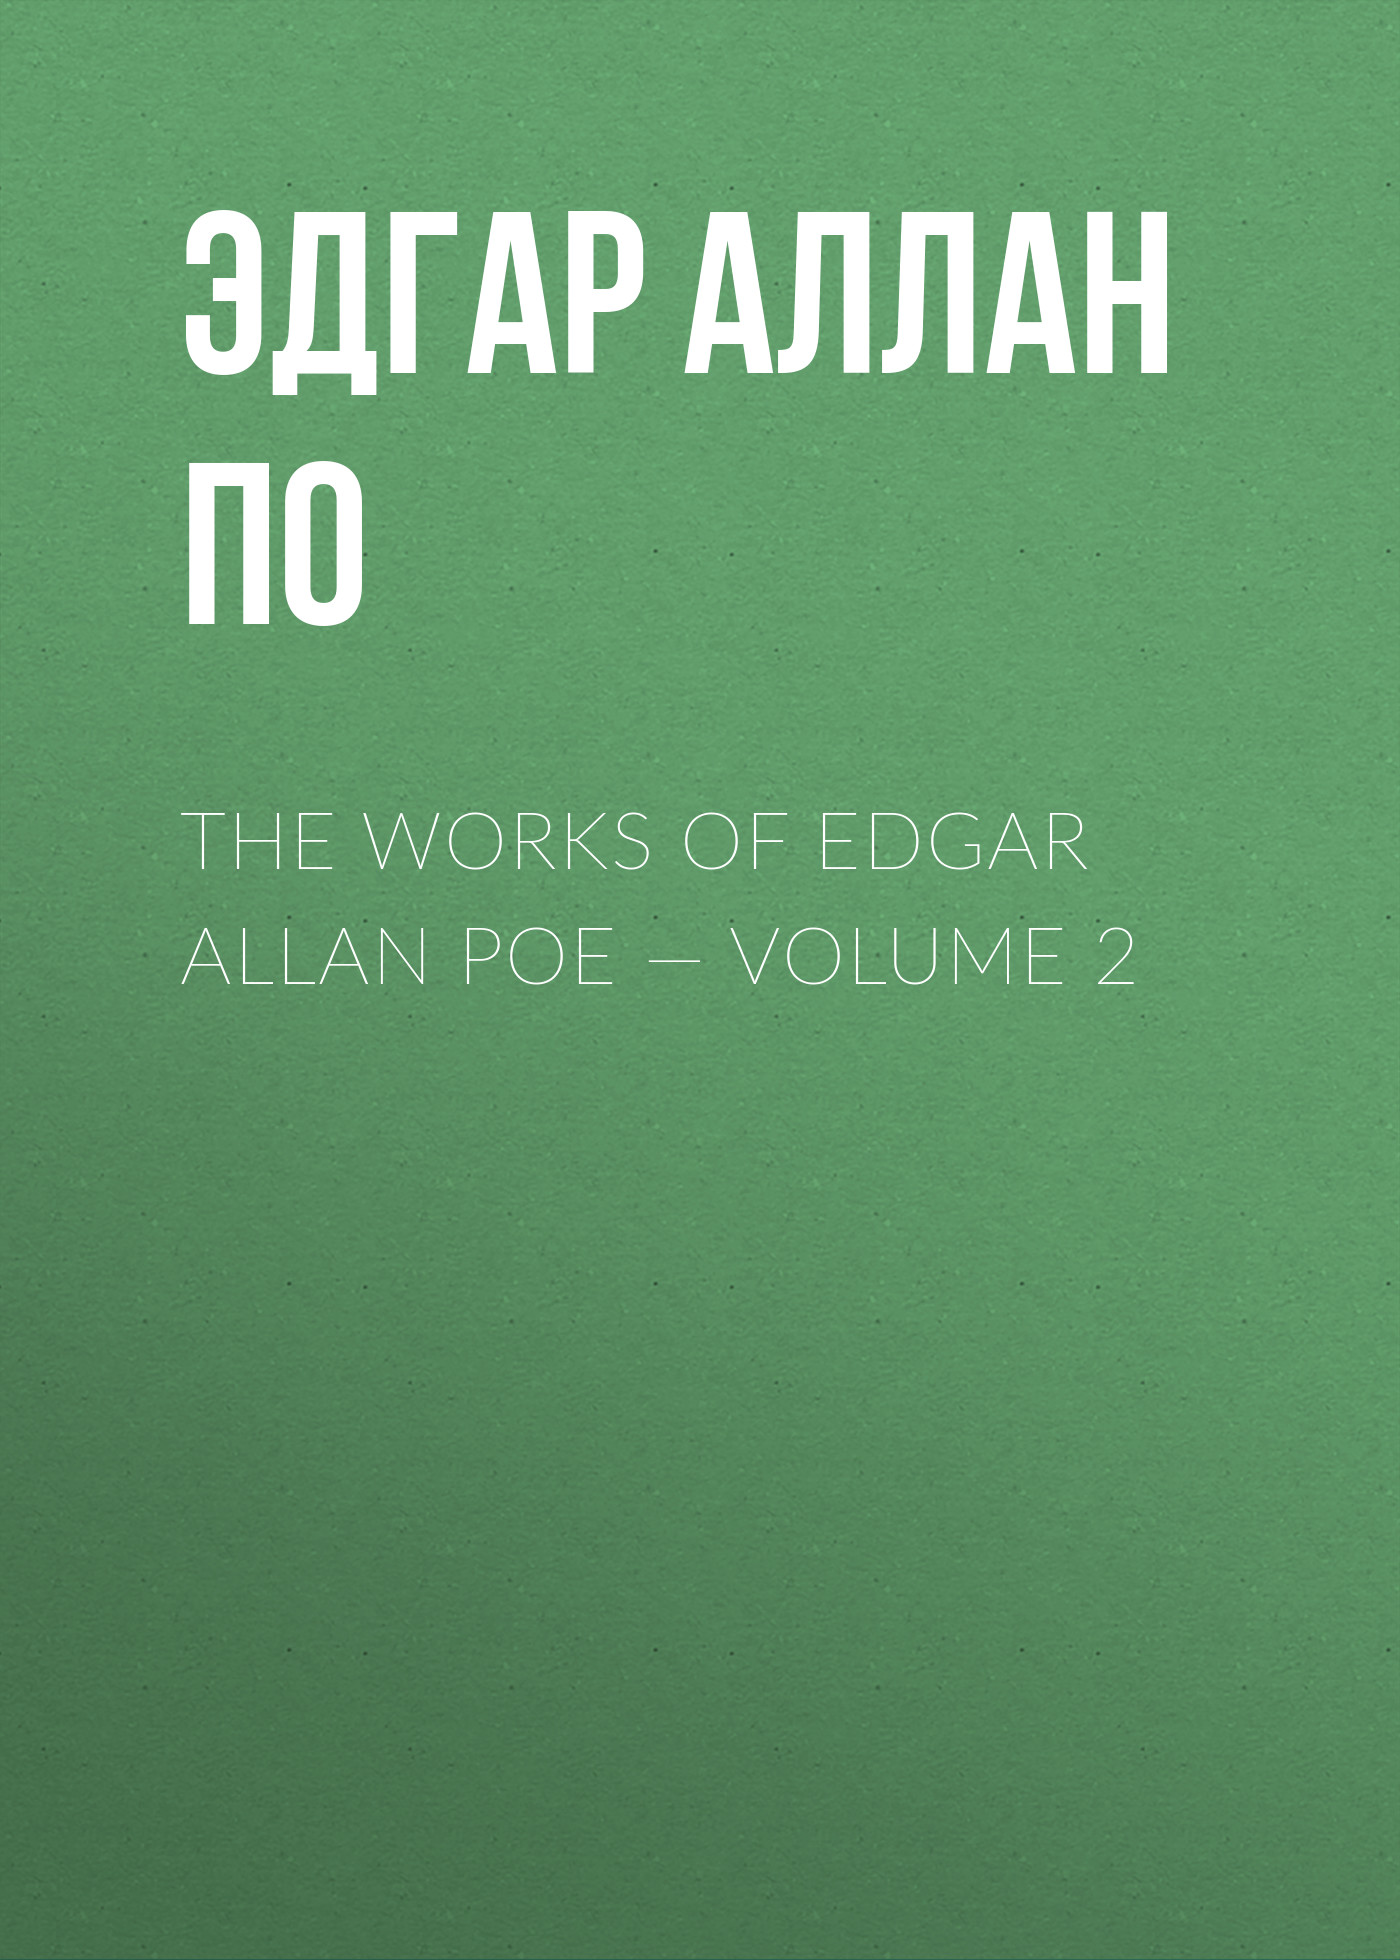 Эдгар Аллан По The Works of Edgar Allan Poe — Volume 2 эдгар аллан по the purloined letter